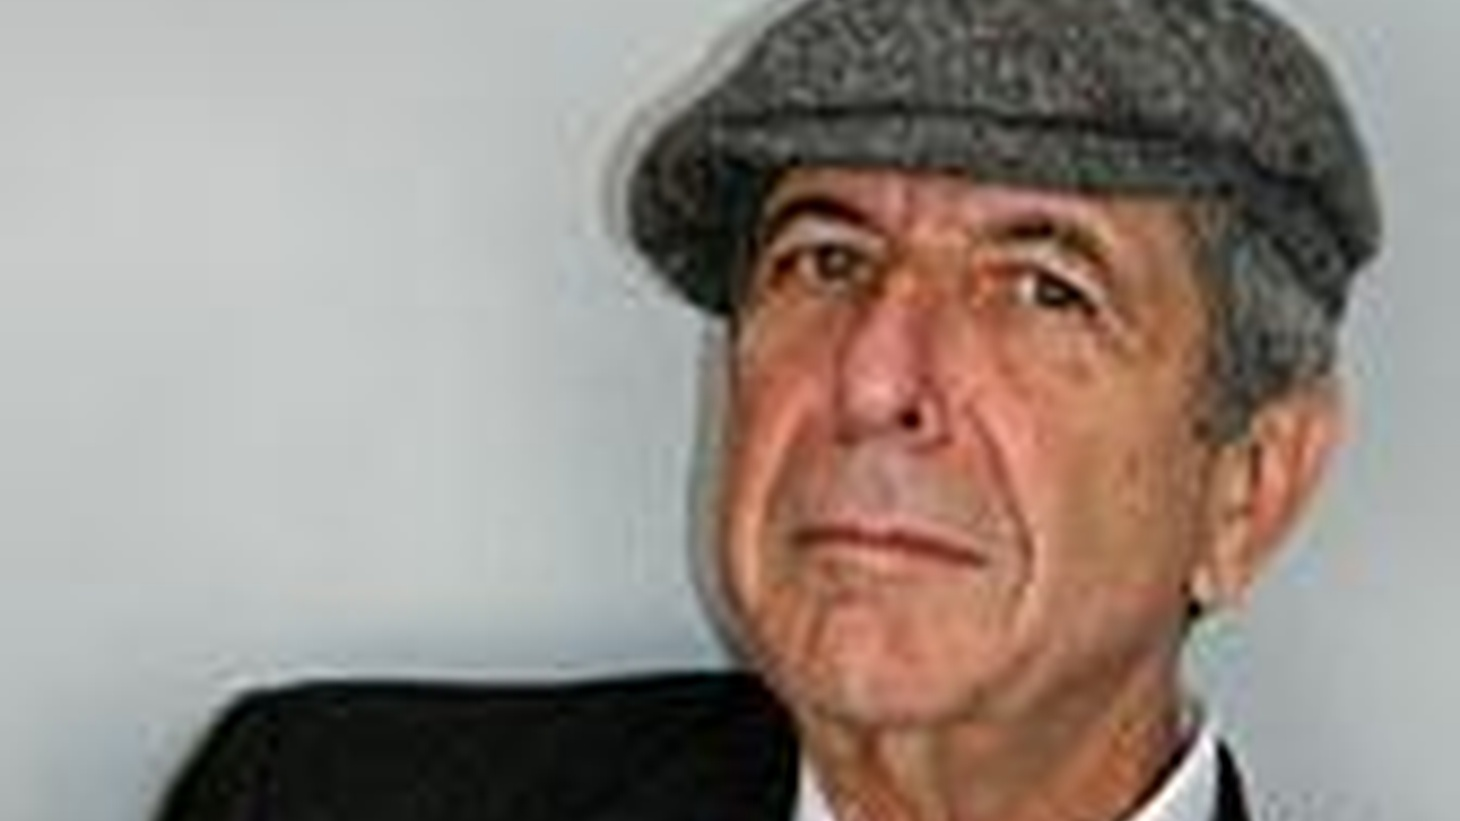 Book of Longing  (Ecco)   Leonard Cohen talks about his early years as a poet in Montreal; his novel, Beautiful Losers; his songs; and now, ten years since his last book and fifty years since his first, the vicissitudes and recoveries that led to the art, lyrics and poems in his new Book of Longing.